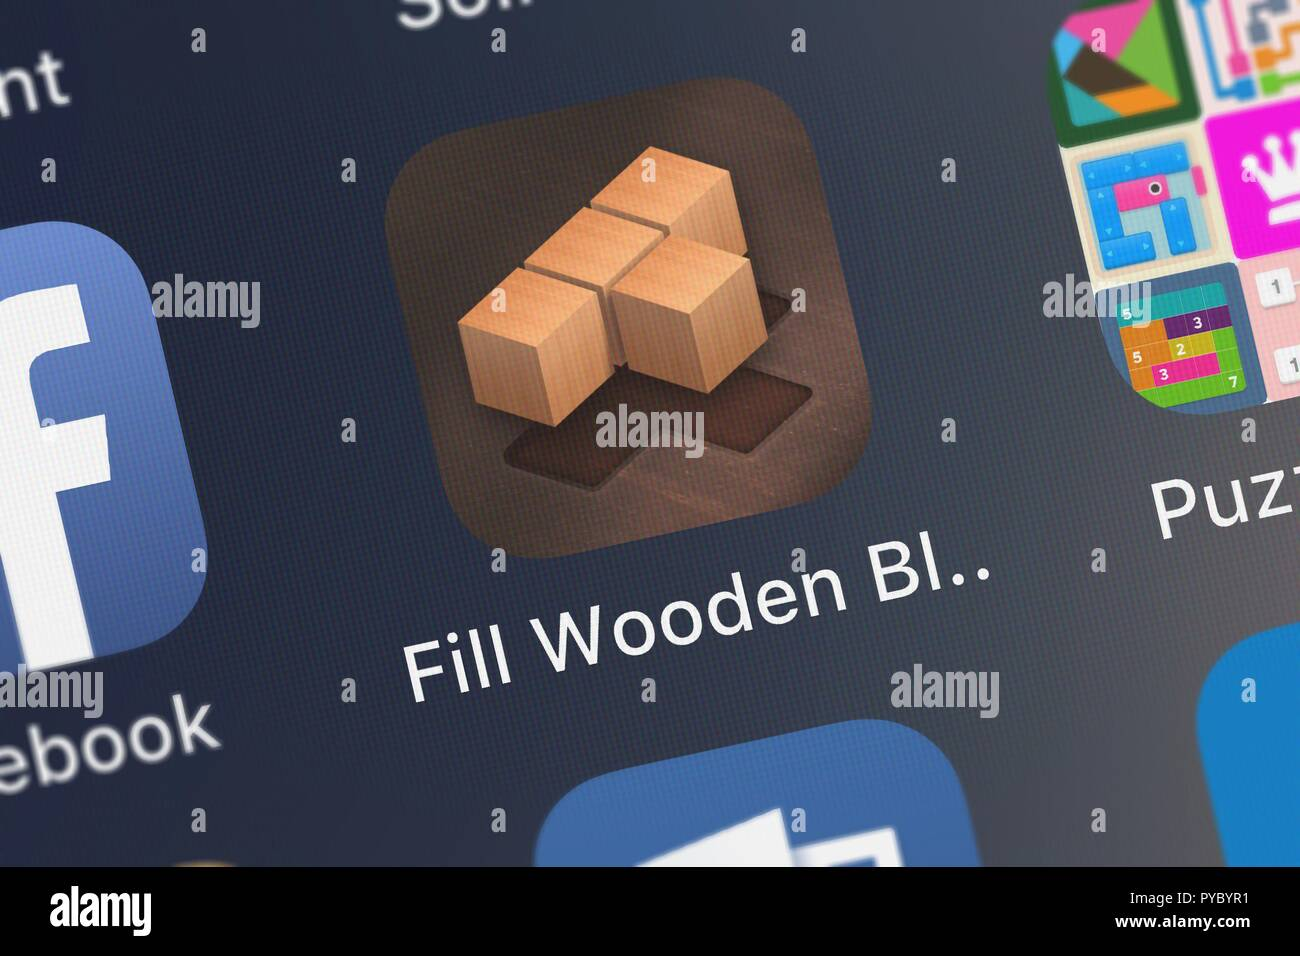 Fill Wooden Block Puzzle 8x8 Stock Photos Fill Wooden Block Puzzle